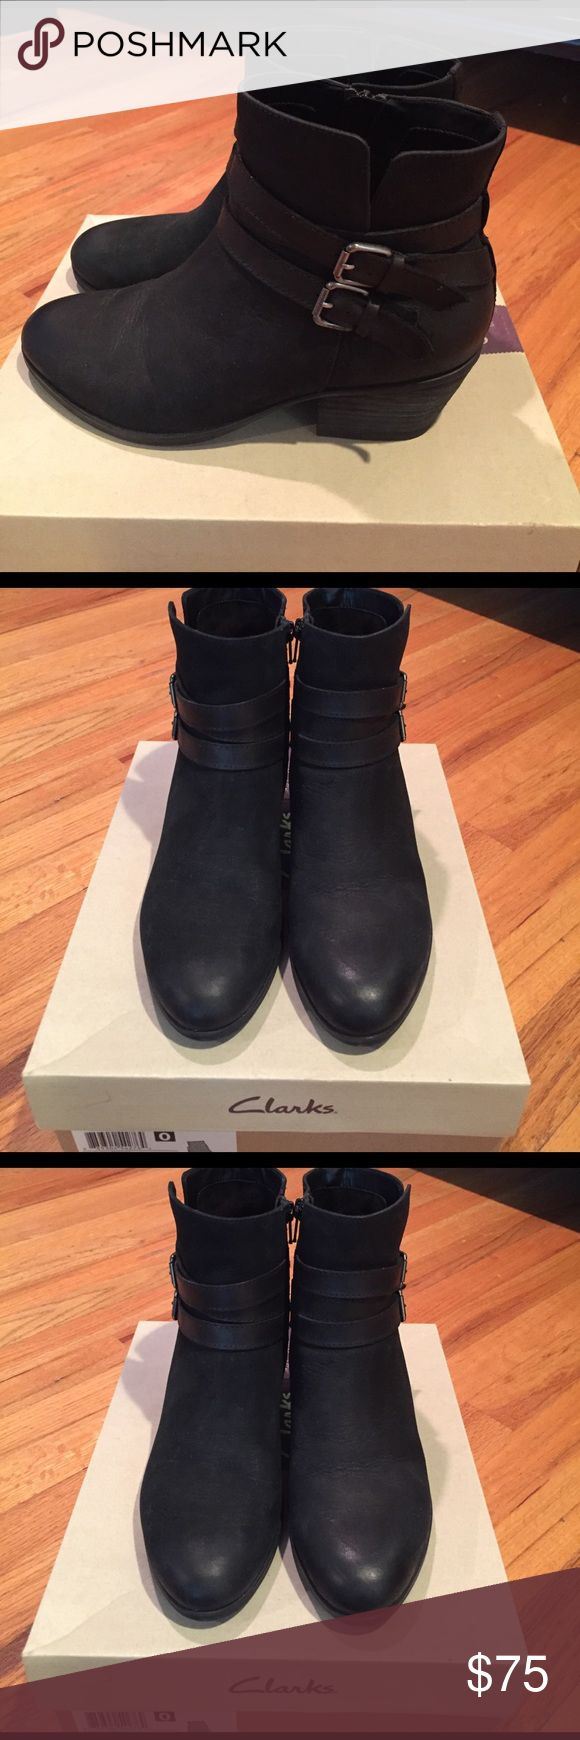 Clarks Gelata Fresca black bootie, 8M. Clarks Gelata Fresca black leather nubuck bootie, size 8.  In excellent condition--worn only 3-4 times.  These look great with sweater dresses, jeans or tights! Clarks Shoes Ankle Boots & Booties